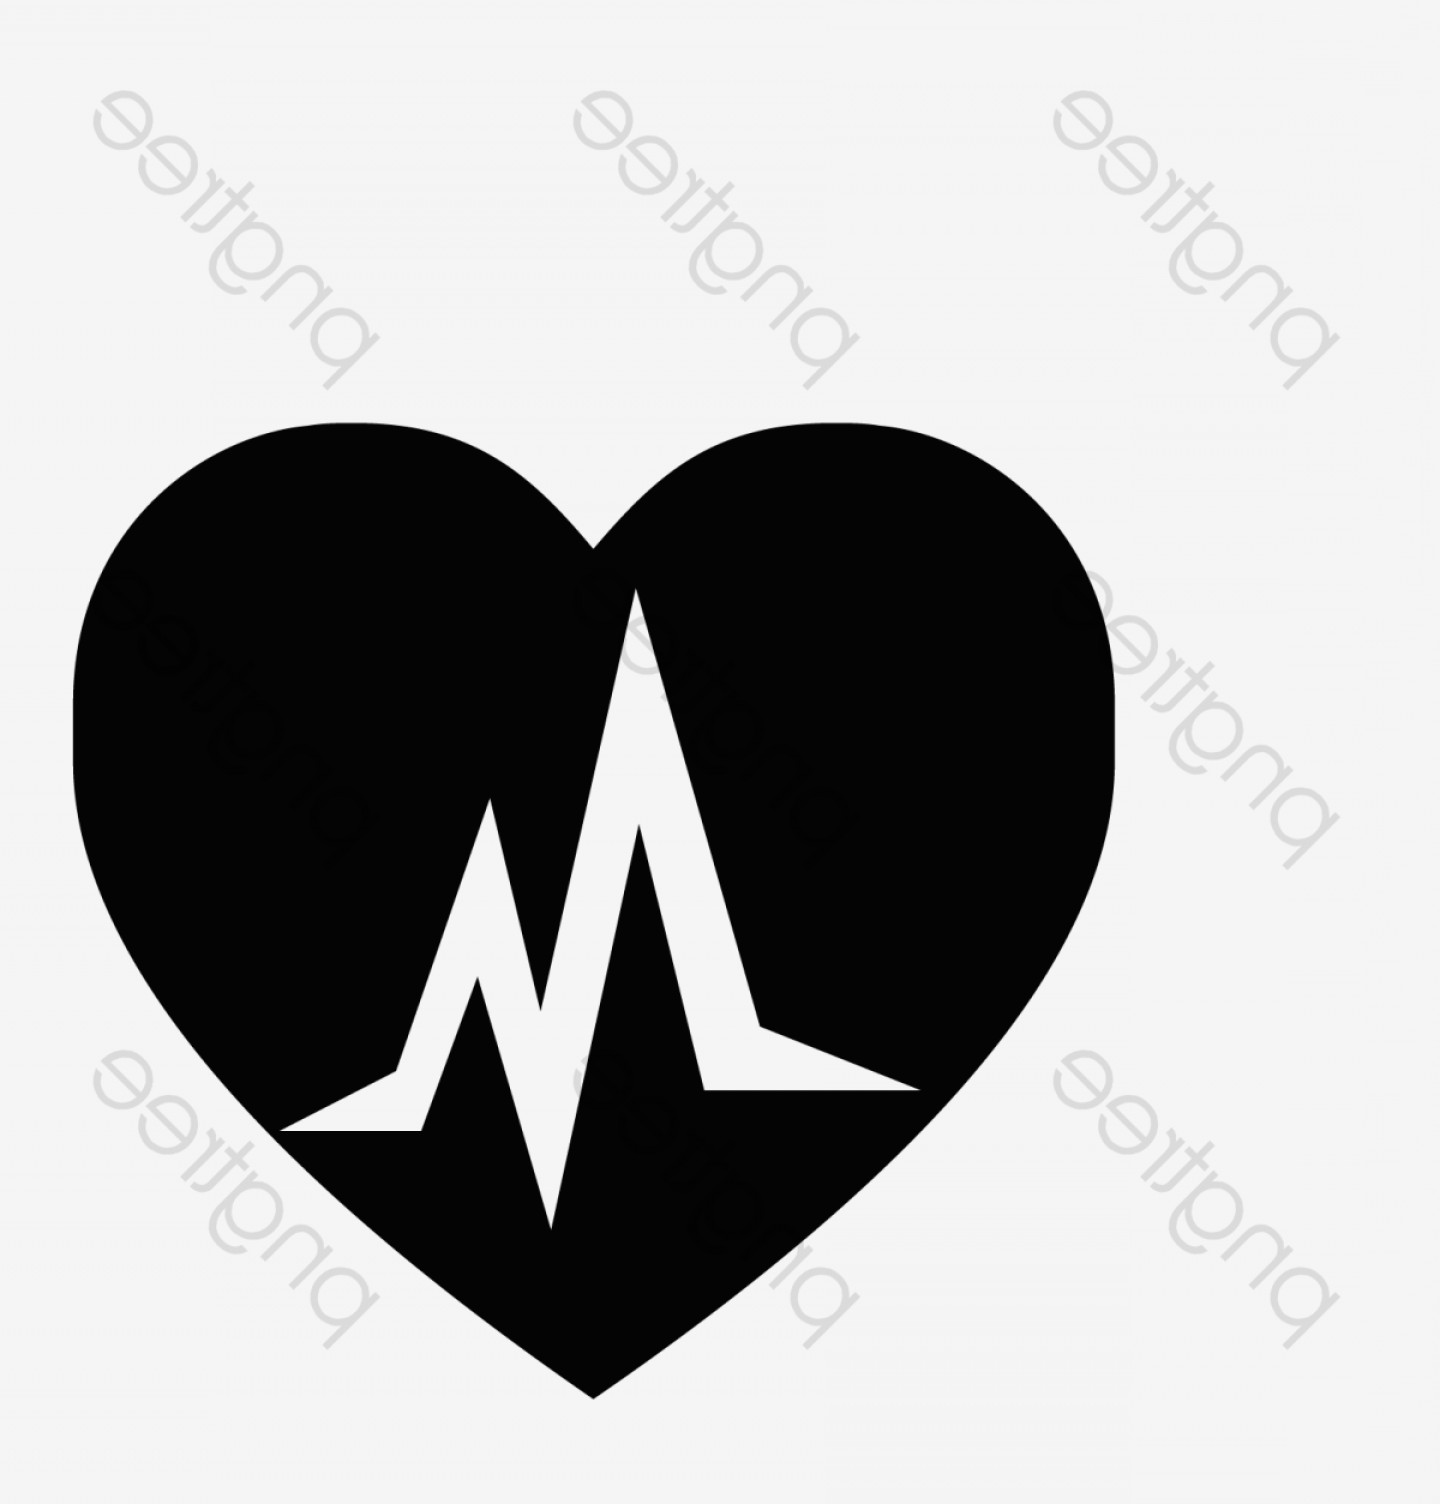 Black Heart And Plane Vector: Plane Black Heart Shaped Ecg Logo